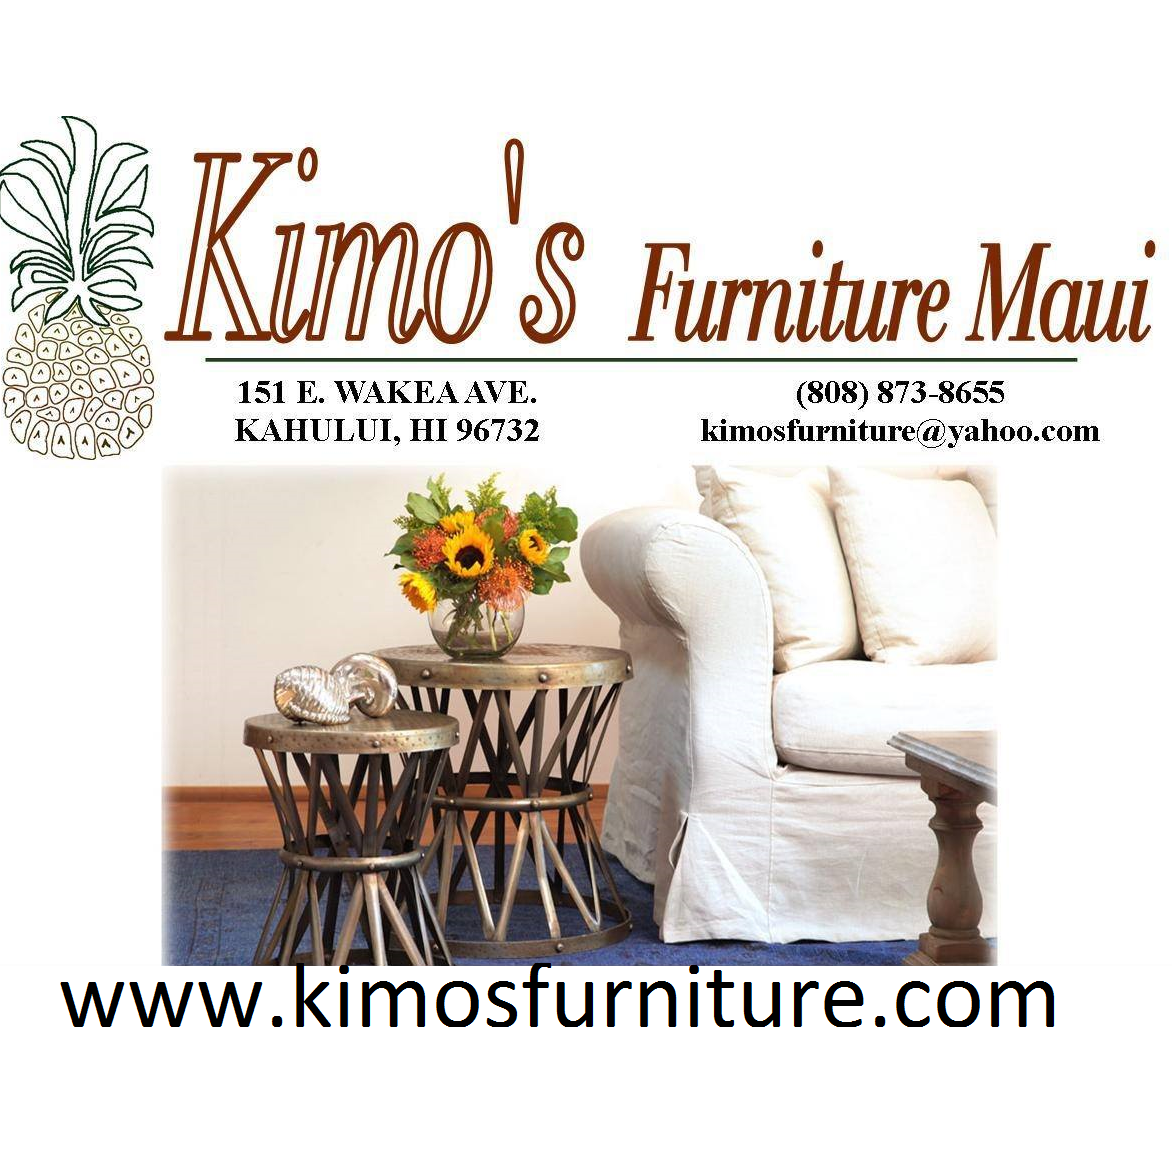 Kimos Furniture Maui